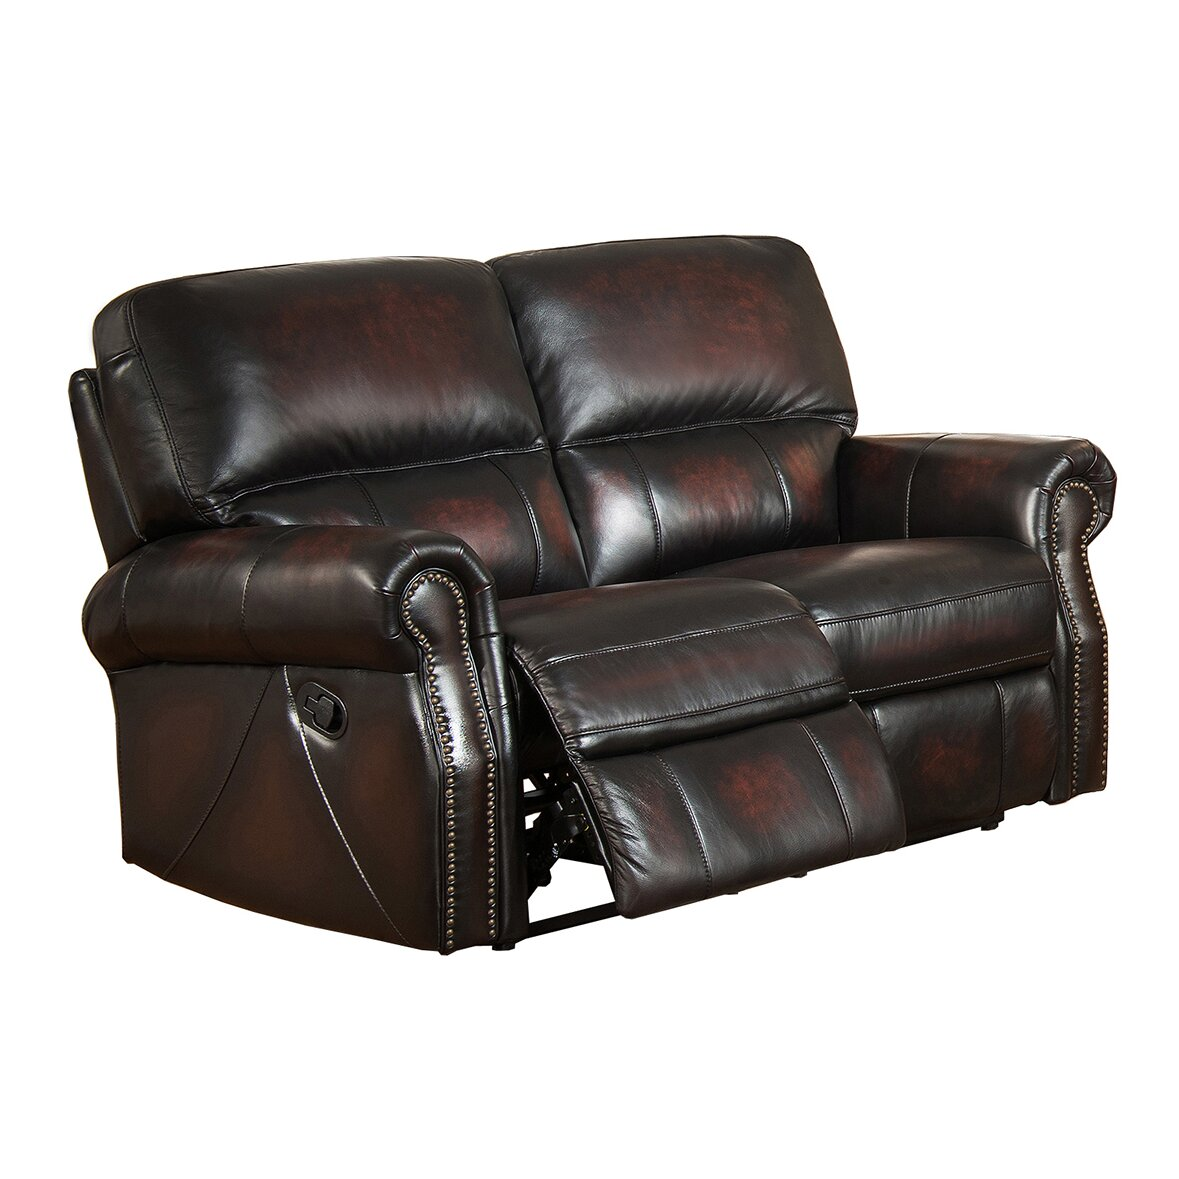 Amax Nevada Leather Recliner Sofa And Loveseat Set Wayfair